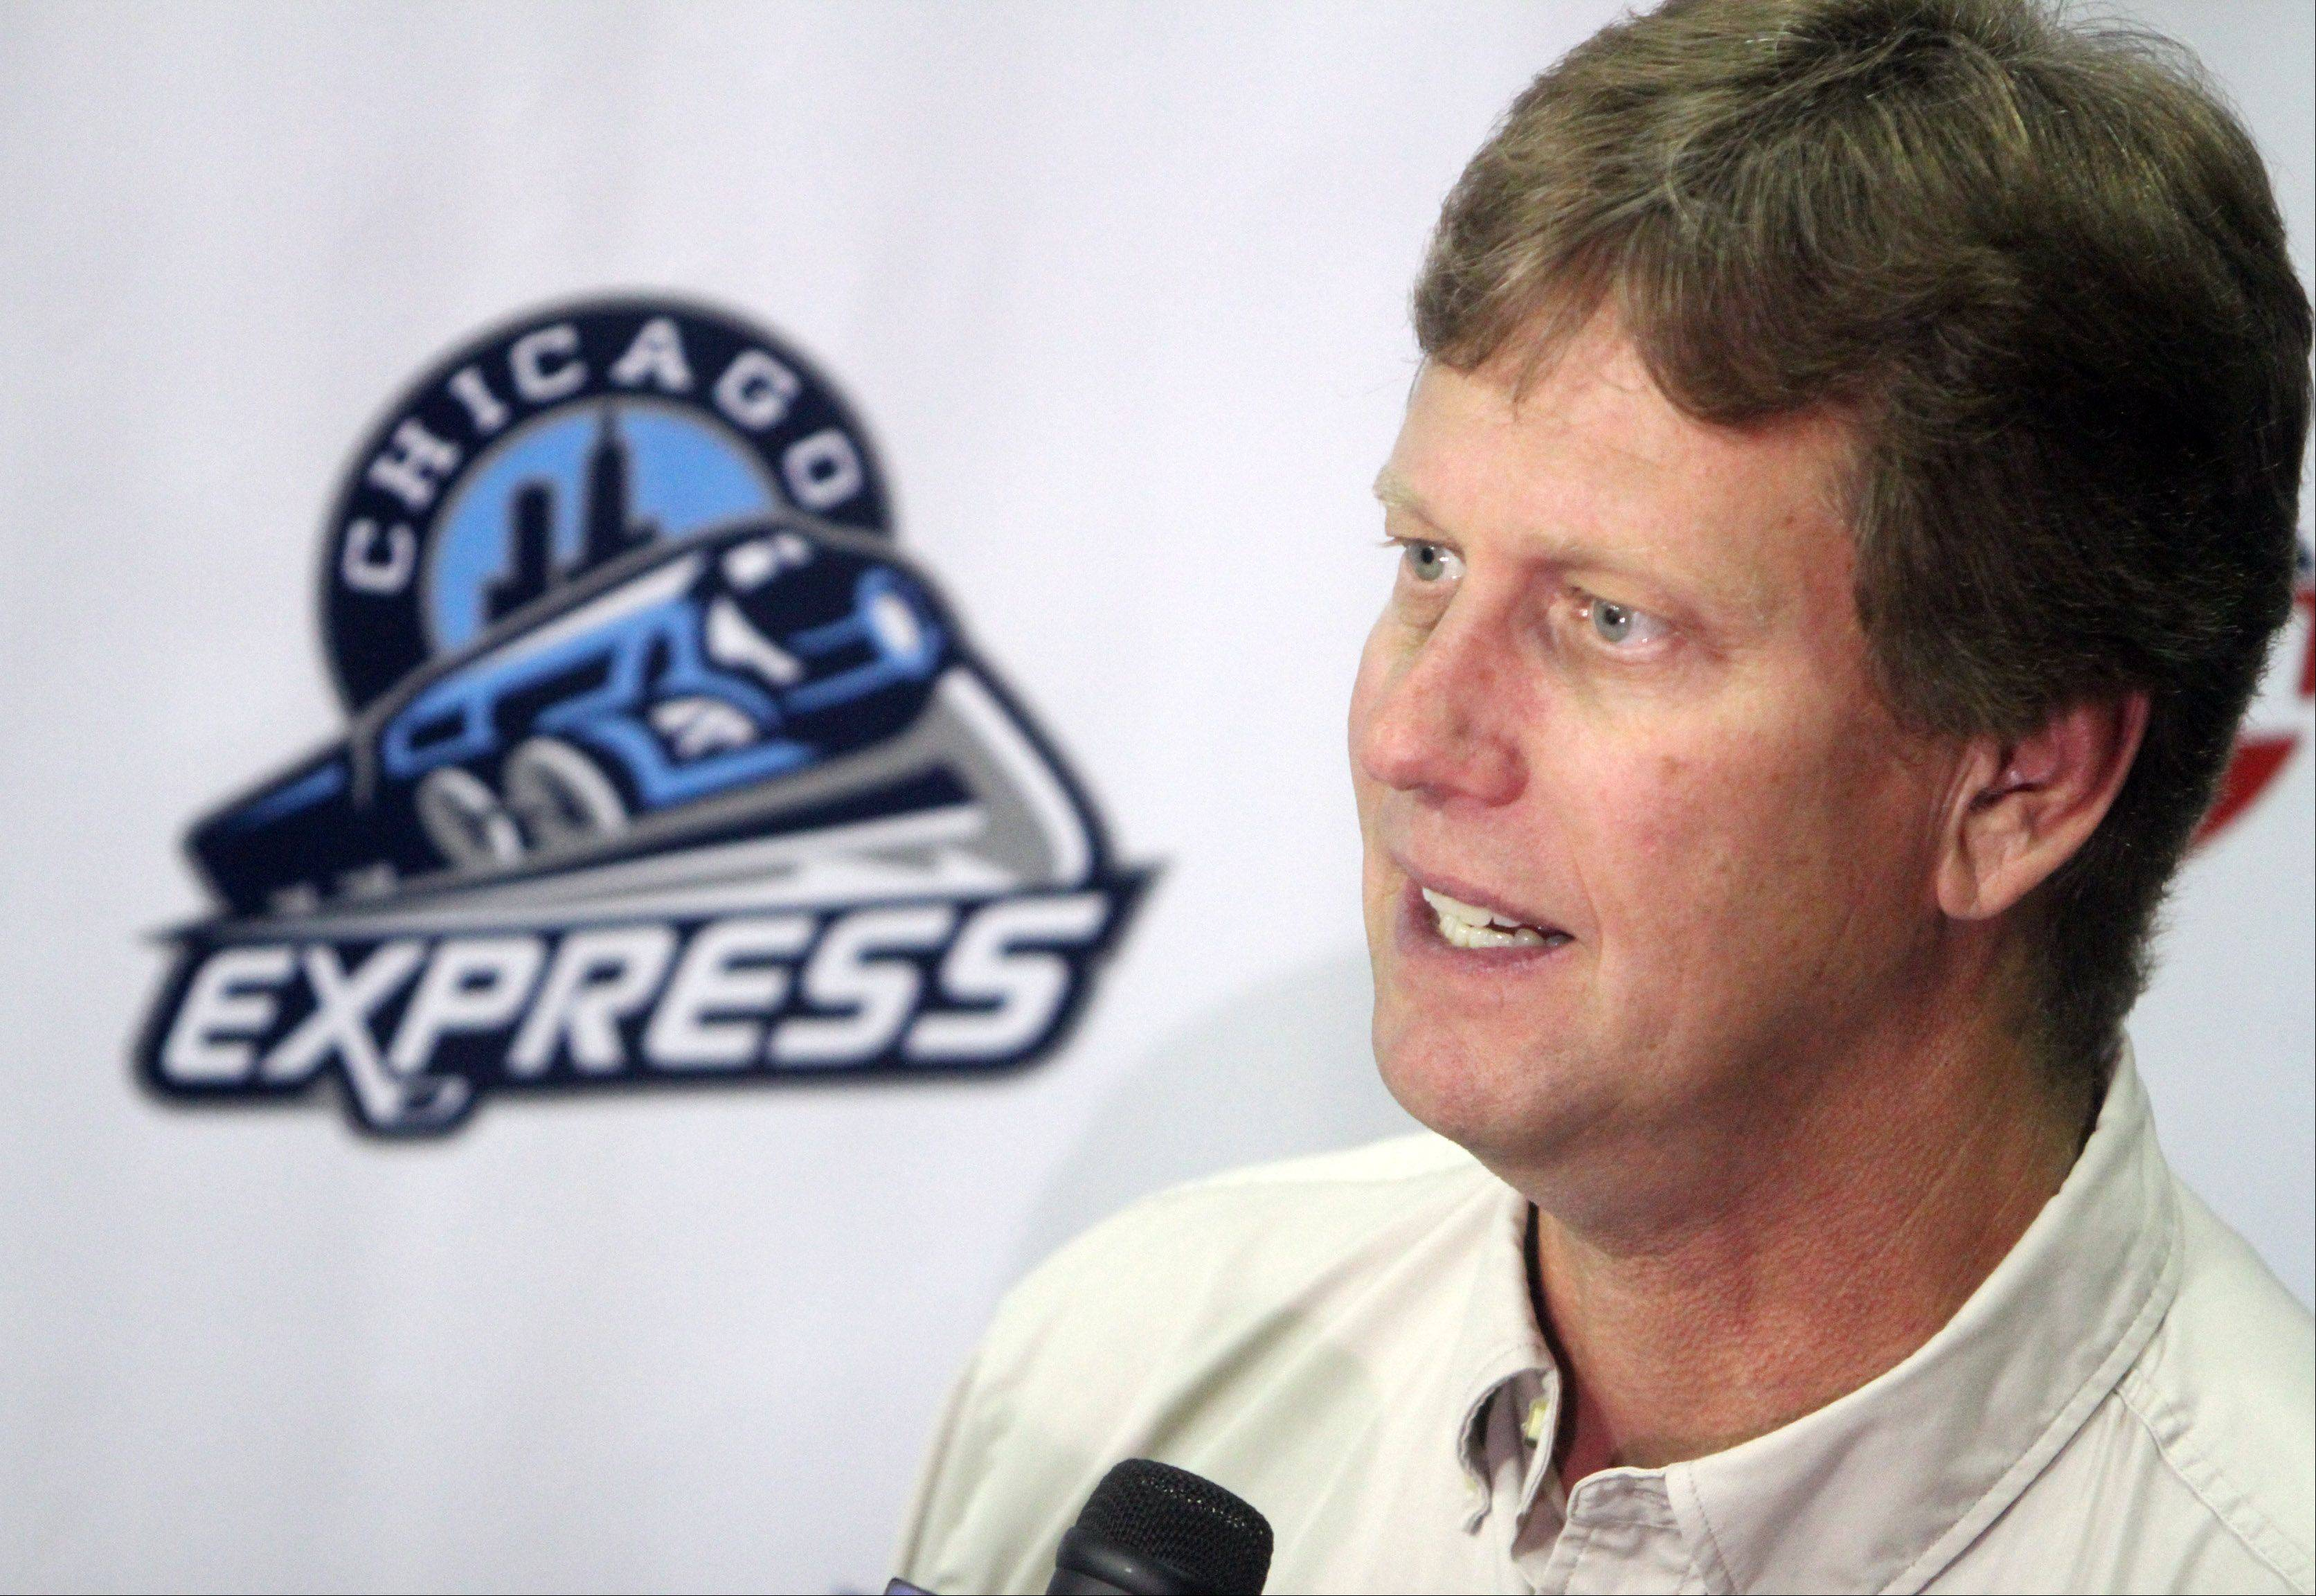 Chicago Express owner Craig Drecktrah speaks to the press during team media day Tuesday at the Sears Centre in Hoffman Estates.